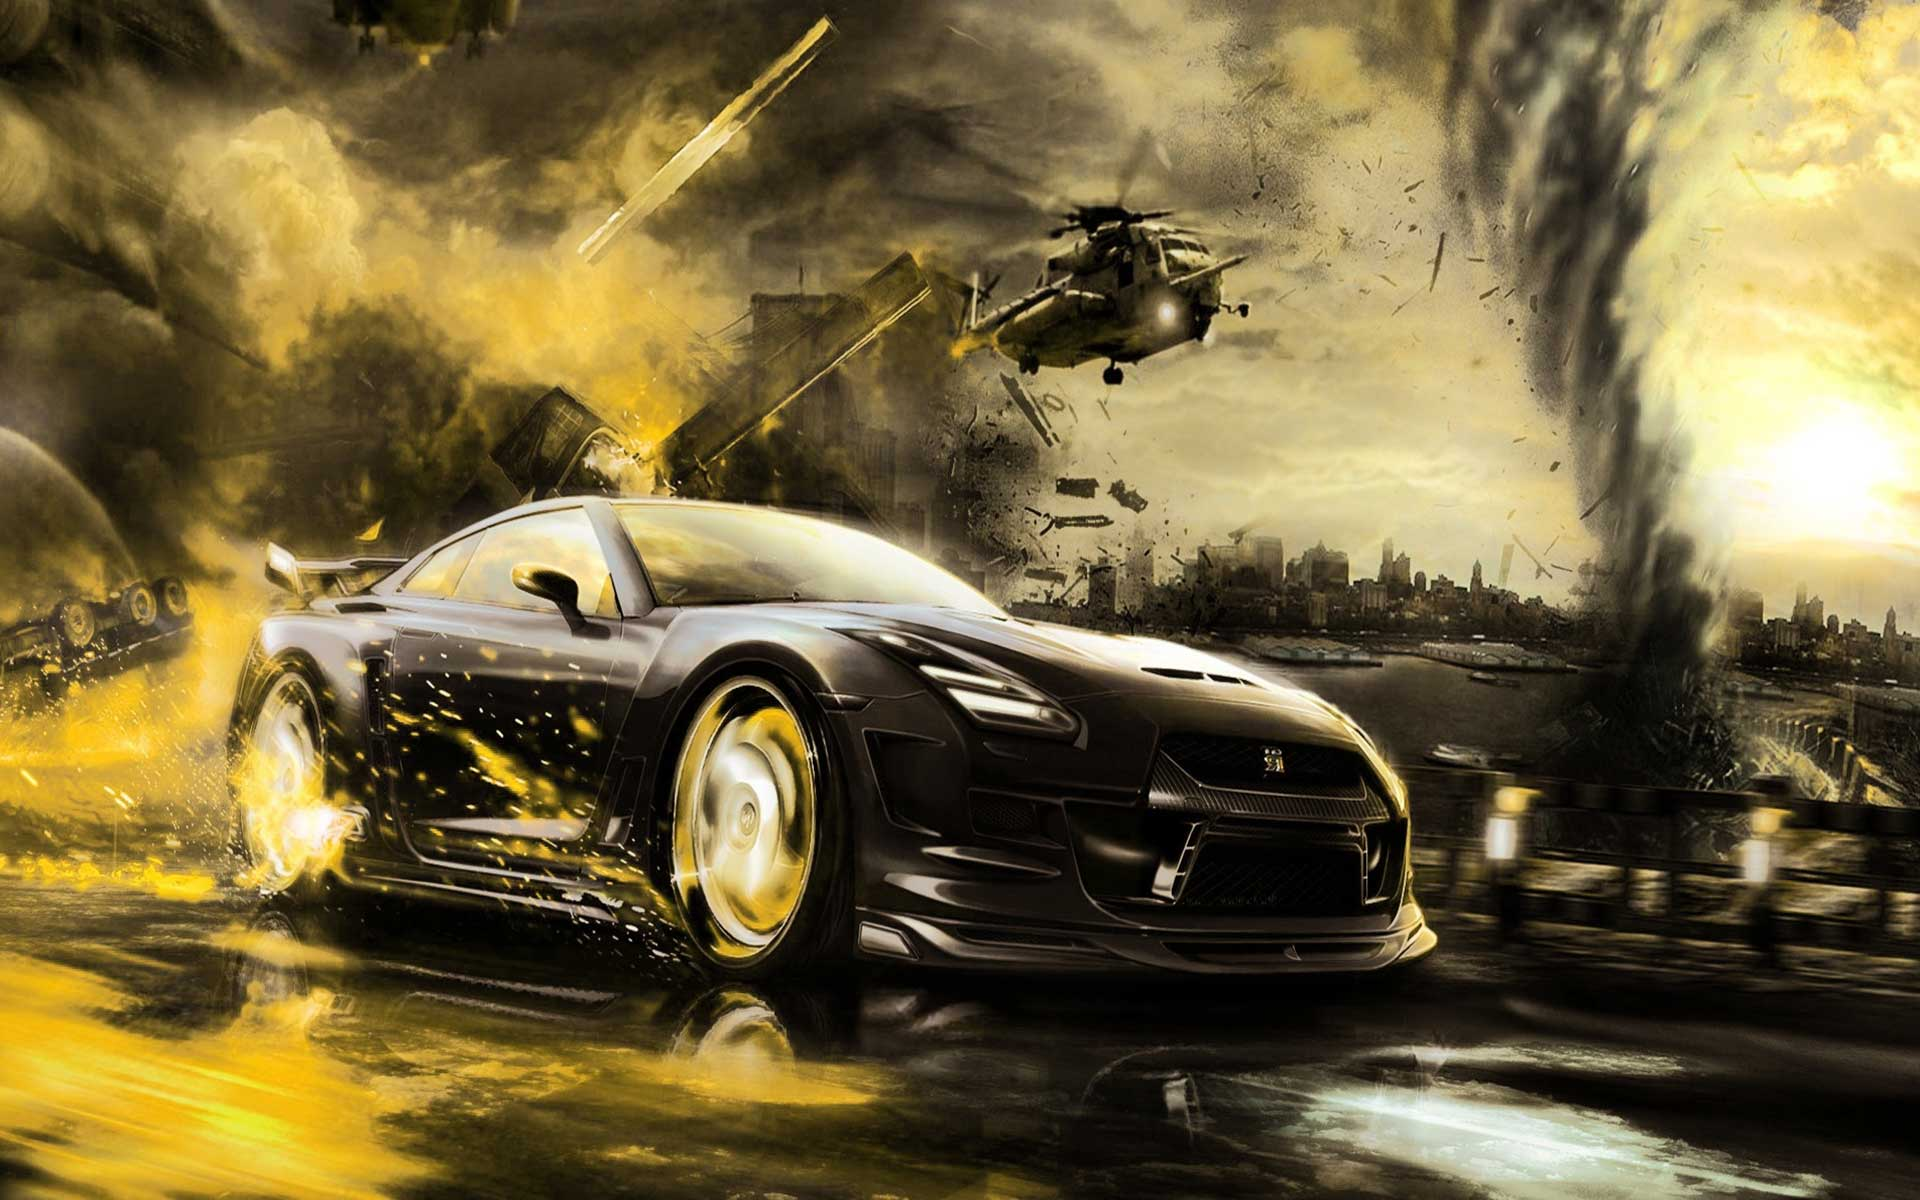 Collection of Cool Backgrounds Hd on Spyder Wallpapers 1920x1200